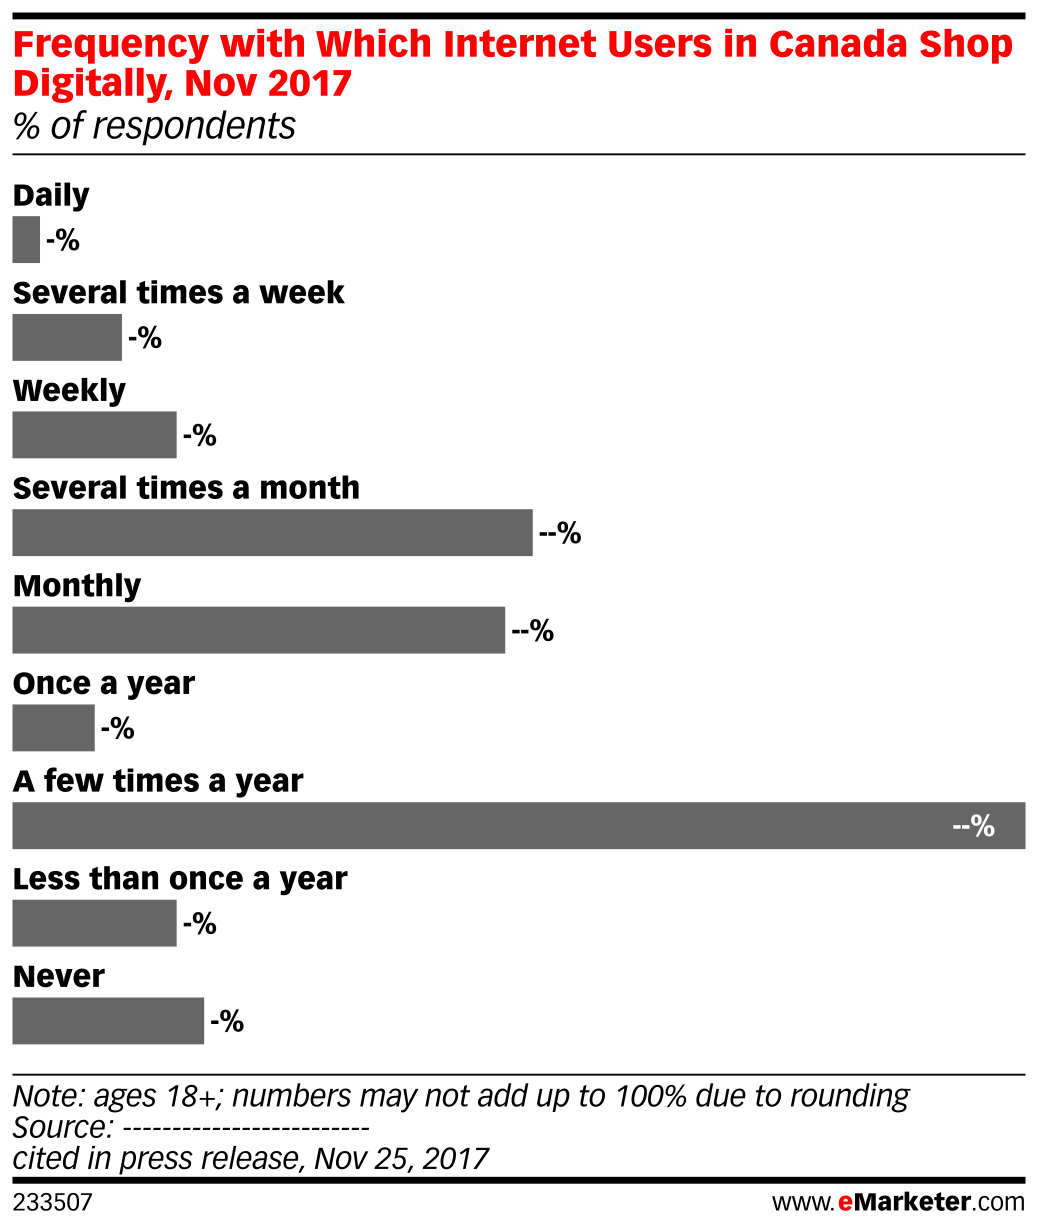 Frequency with Which Internet Users in Canada Shop Digitally, Nov 2017 (% of respondents)